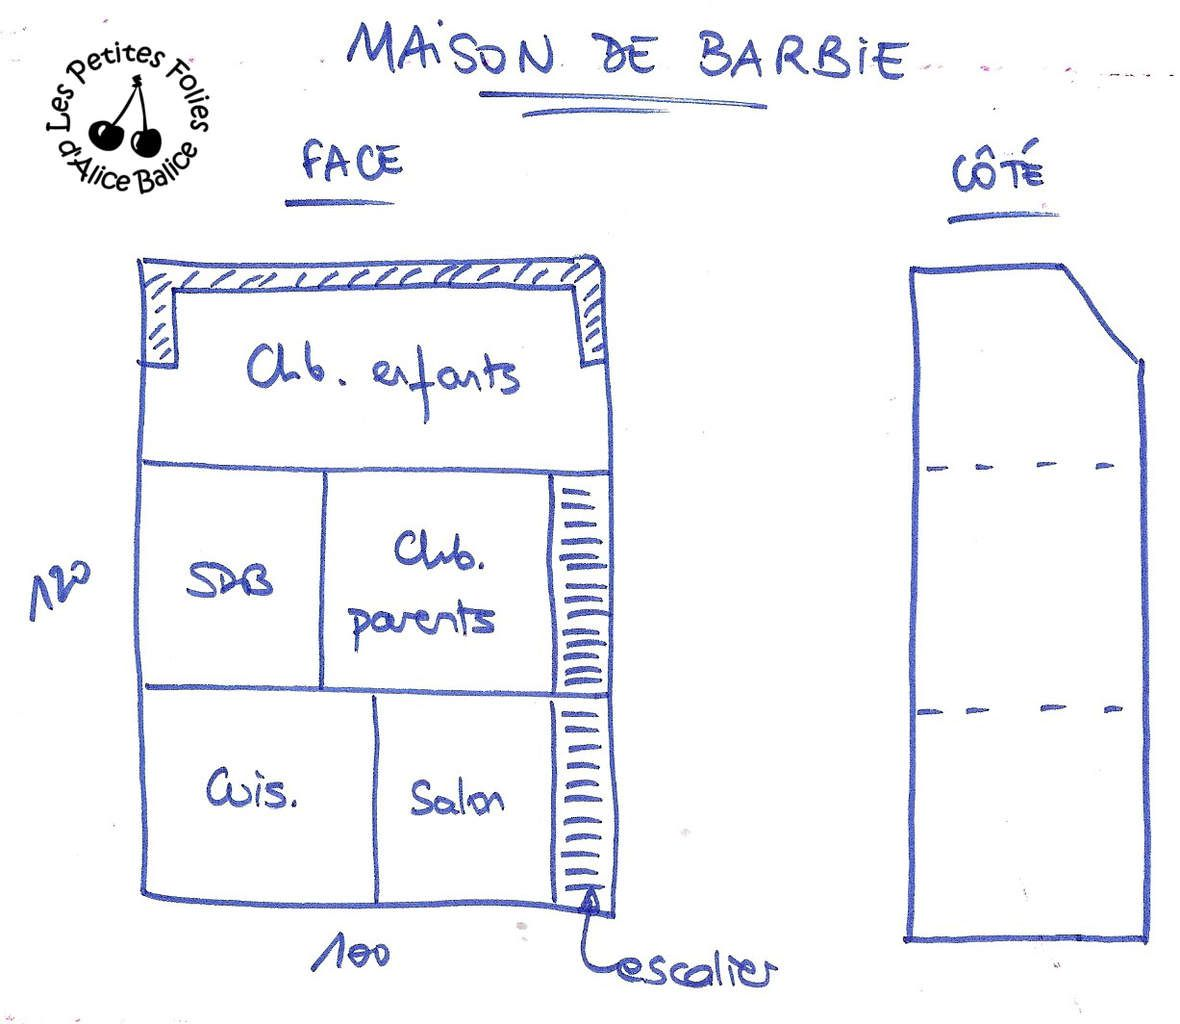 Maison de barbie 1 la conception et la construction for Je veux construire ma propre maison